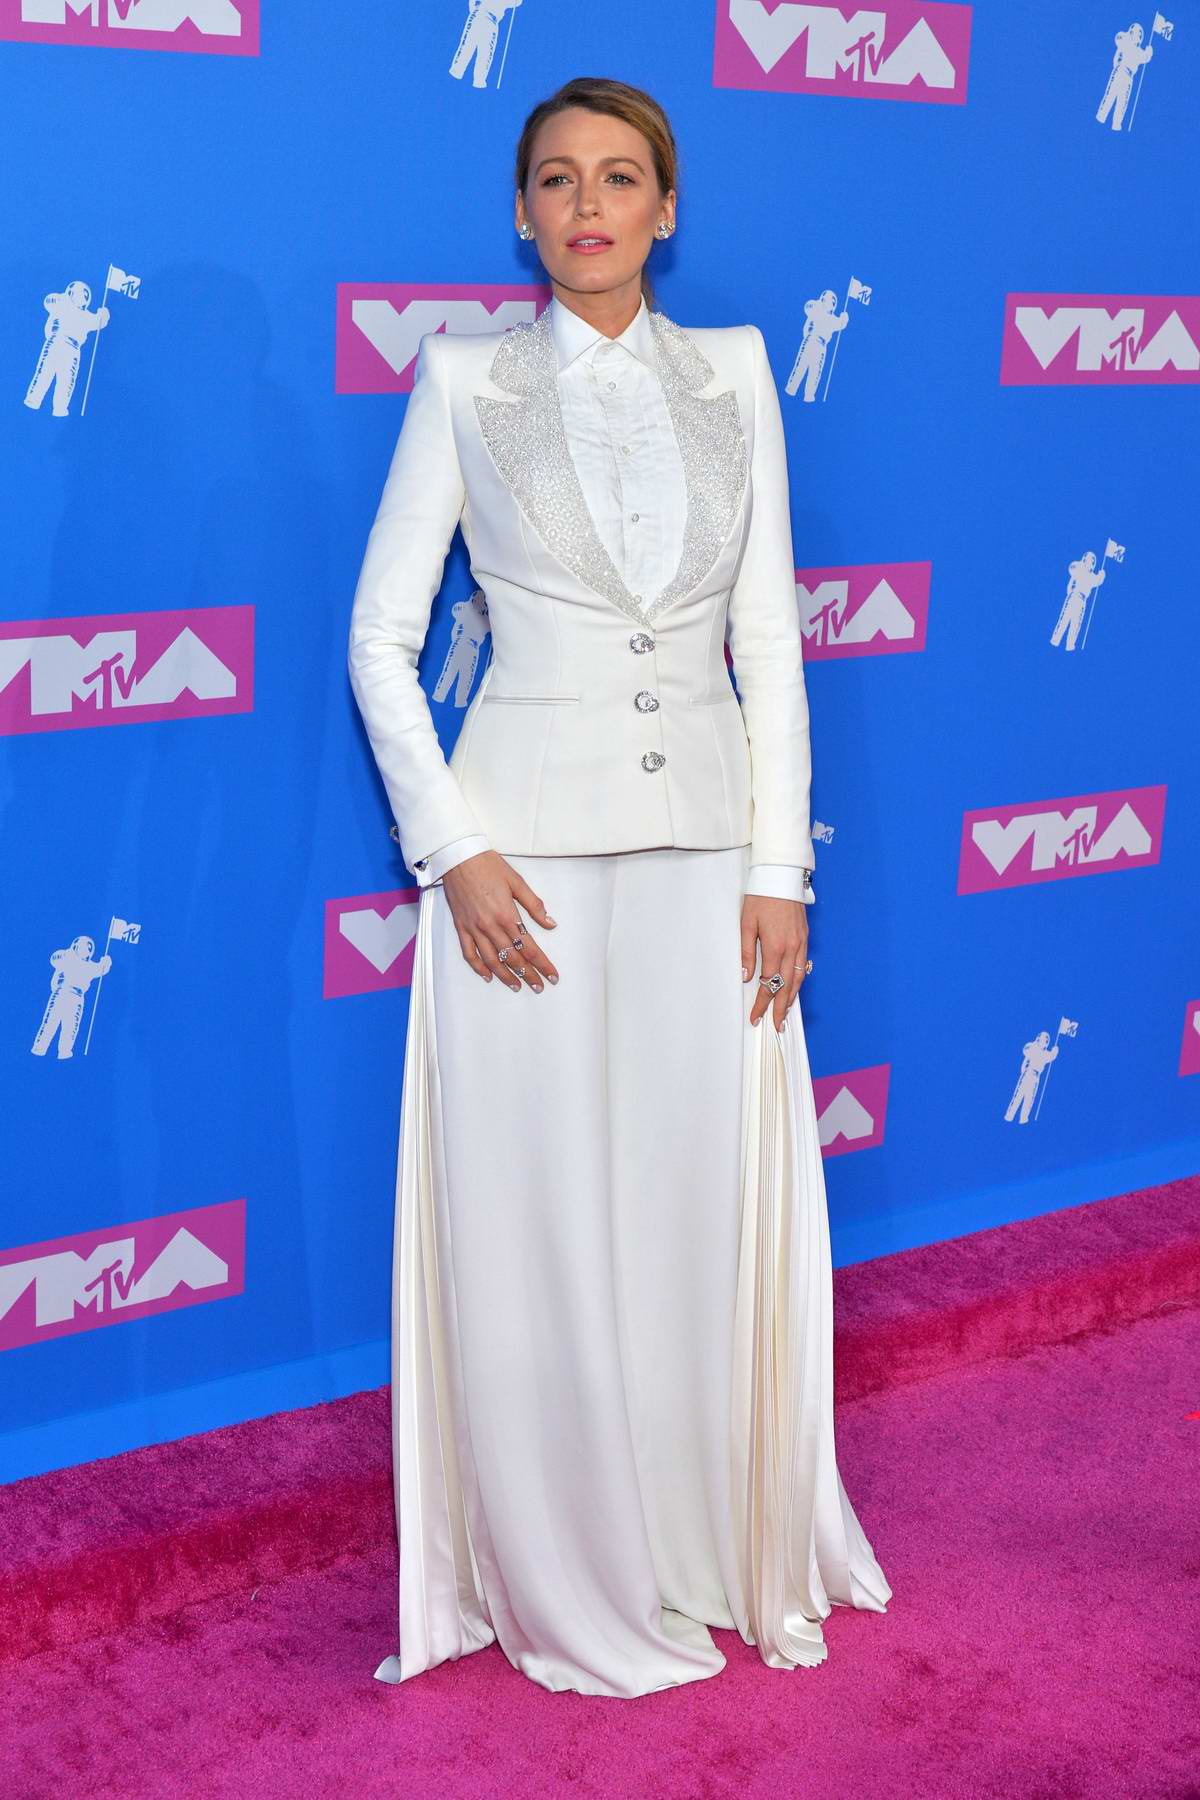 Blake Lively attends 2018 MTV Video Music Awards (MTV VMA 2018) at Radio City Music Hall in New York City